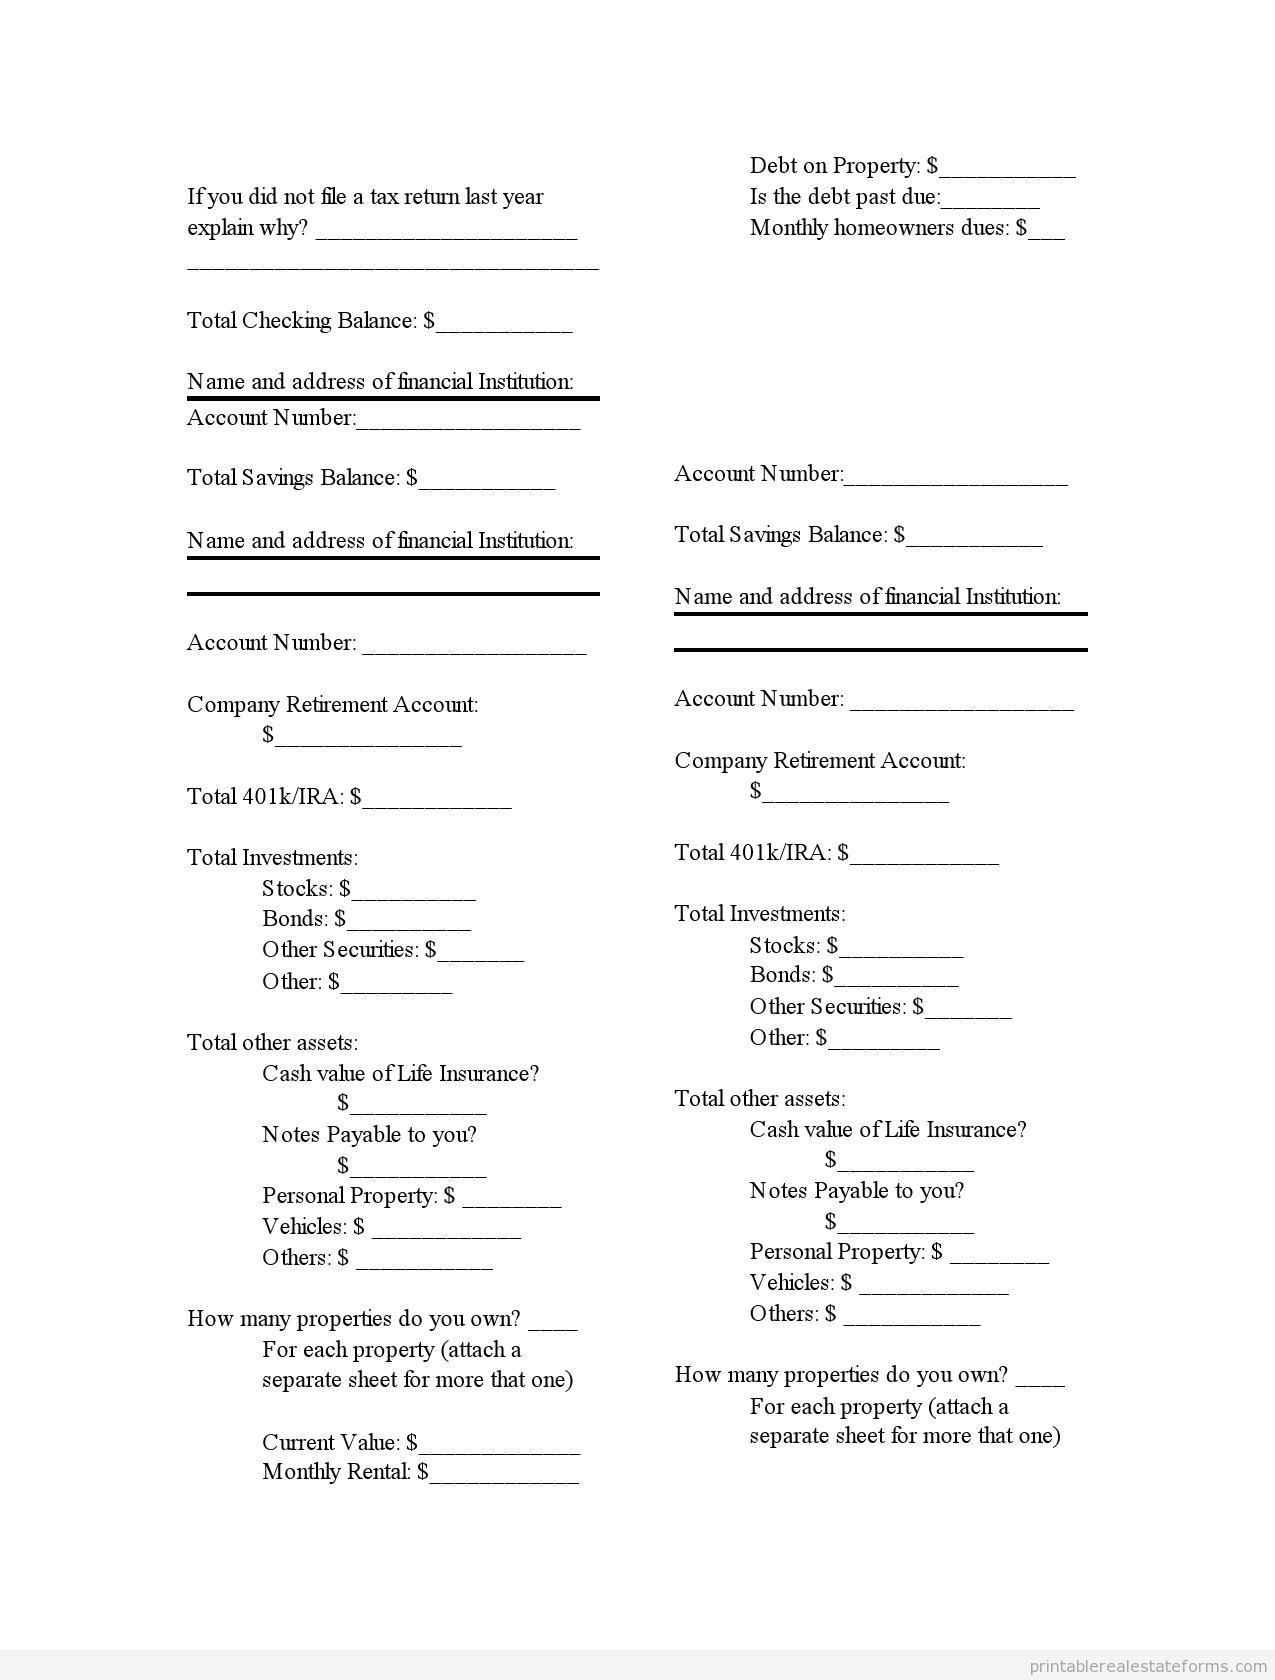 Printable Personal Financial Statement Form Printable Financial Statement 2  Template 2015 Sample Forms 2015 .